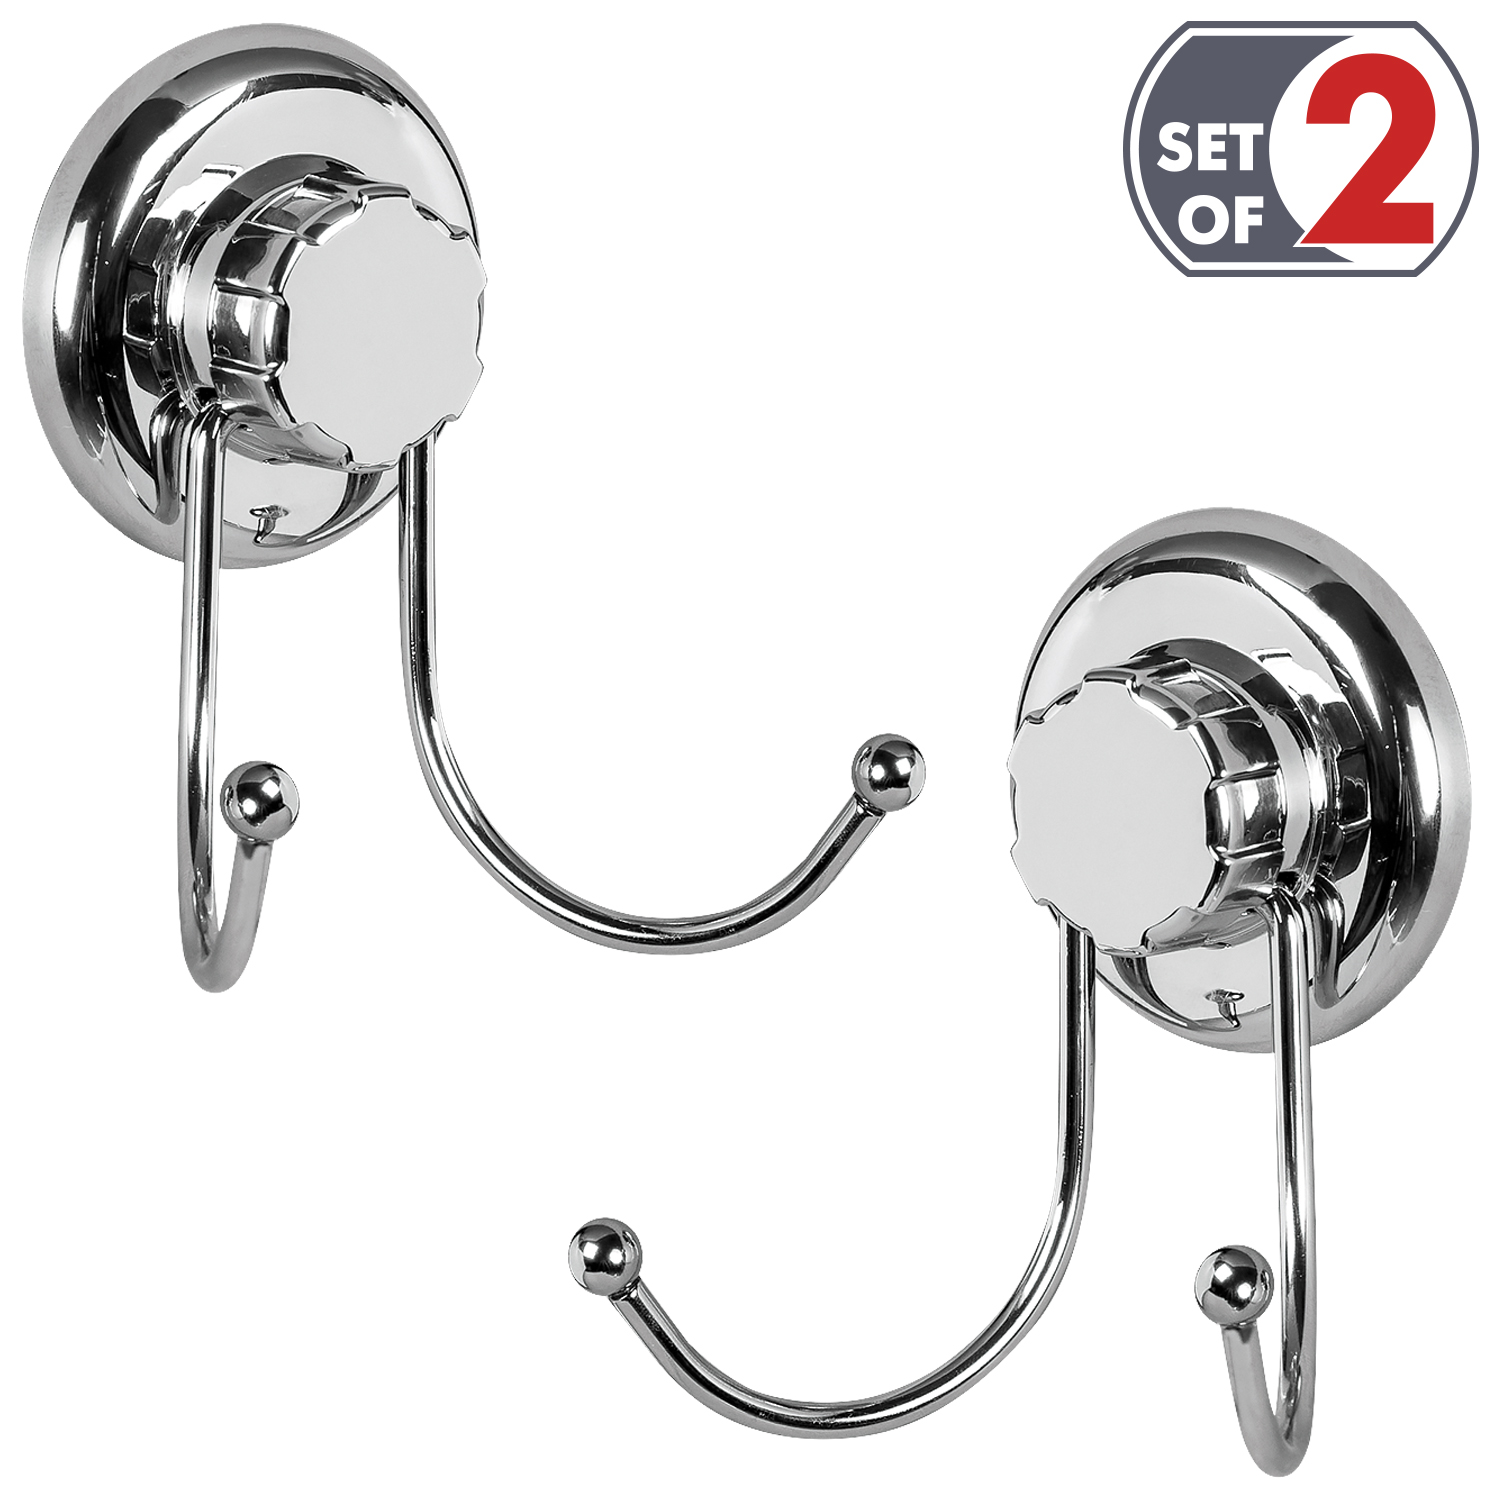 Tatkraft Megalock Suction Hooks for Bath Towel, Tea Towel, Kitchen ...